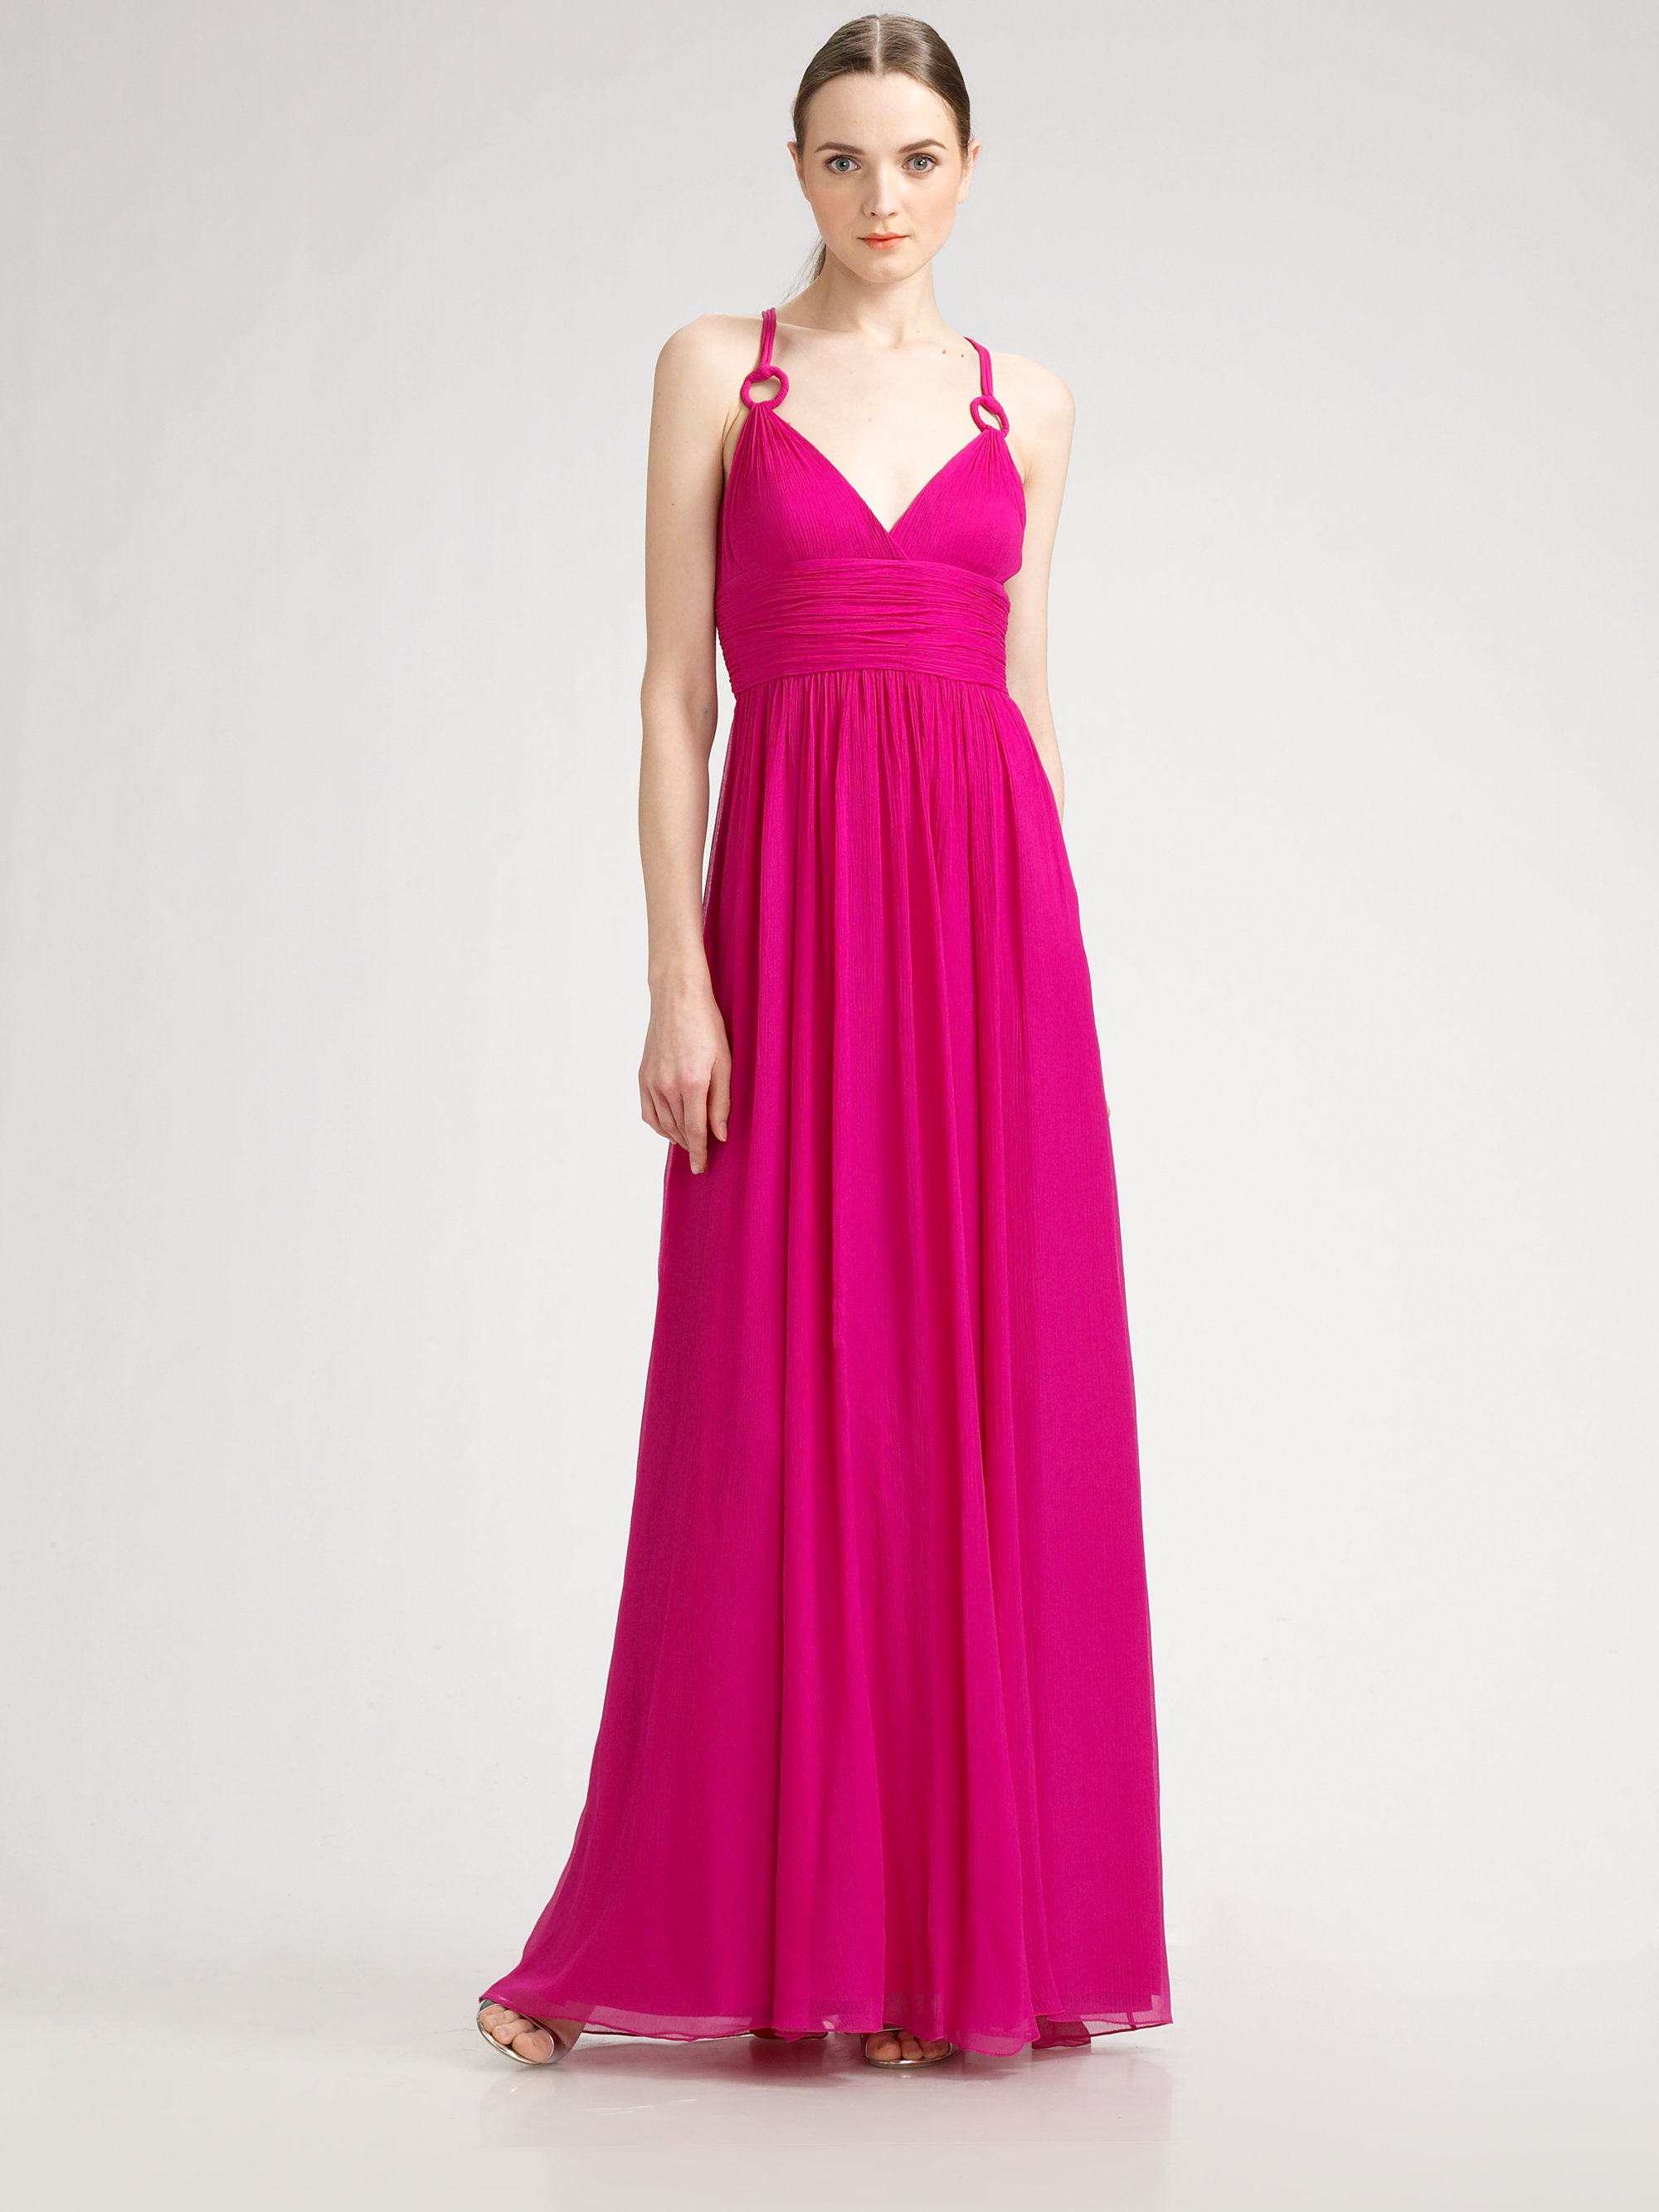 Saks Fifth Ave Plus Size Mother Of The Bride Dresses – DACC